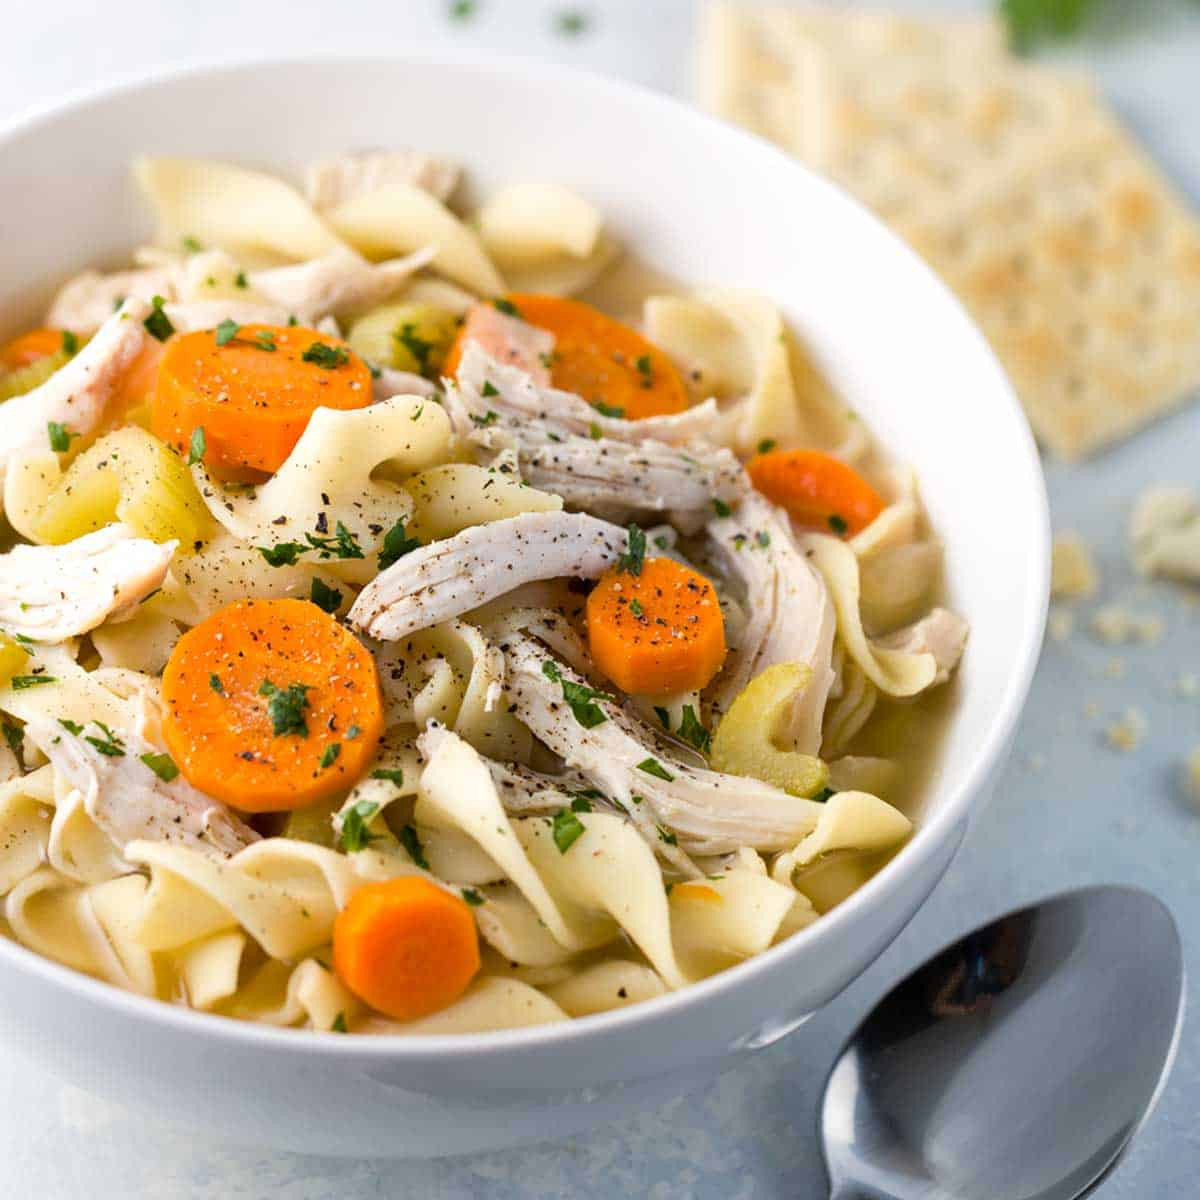 Chicken Soup Recipe  Easy Slow Cooker Chicken Noodle Soup Recipe